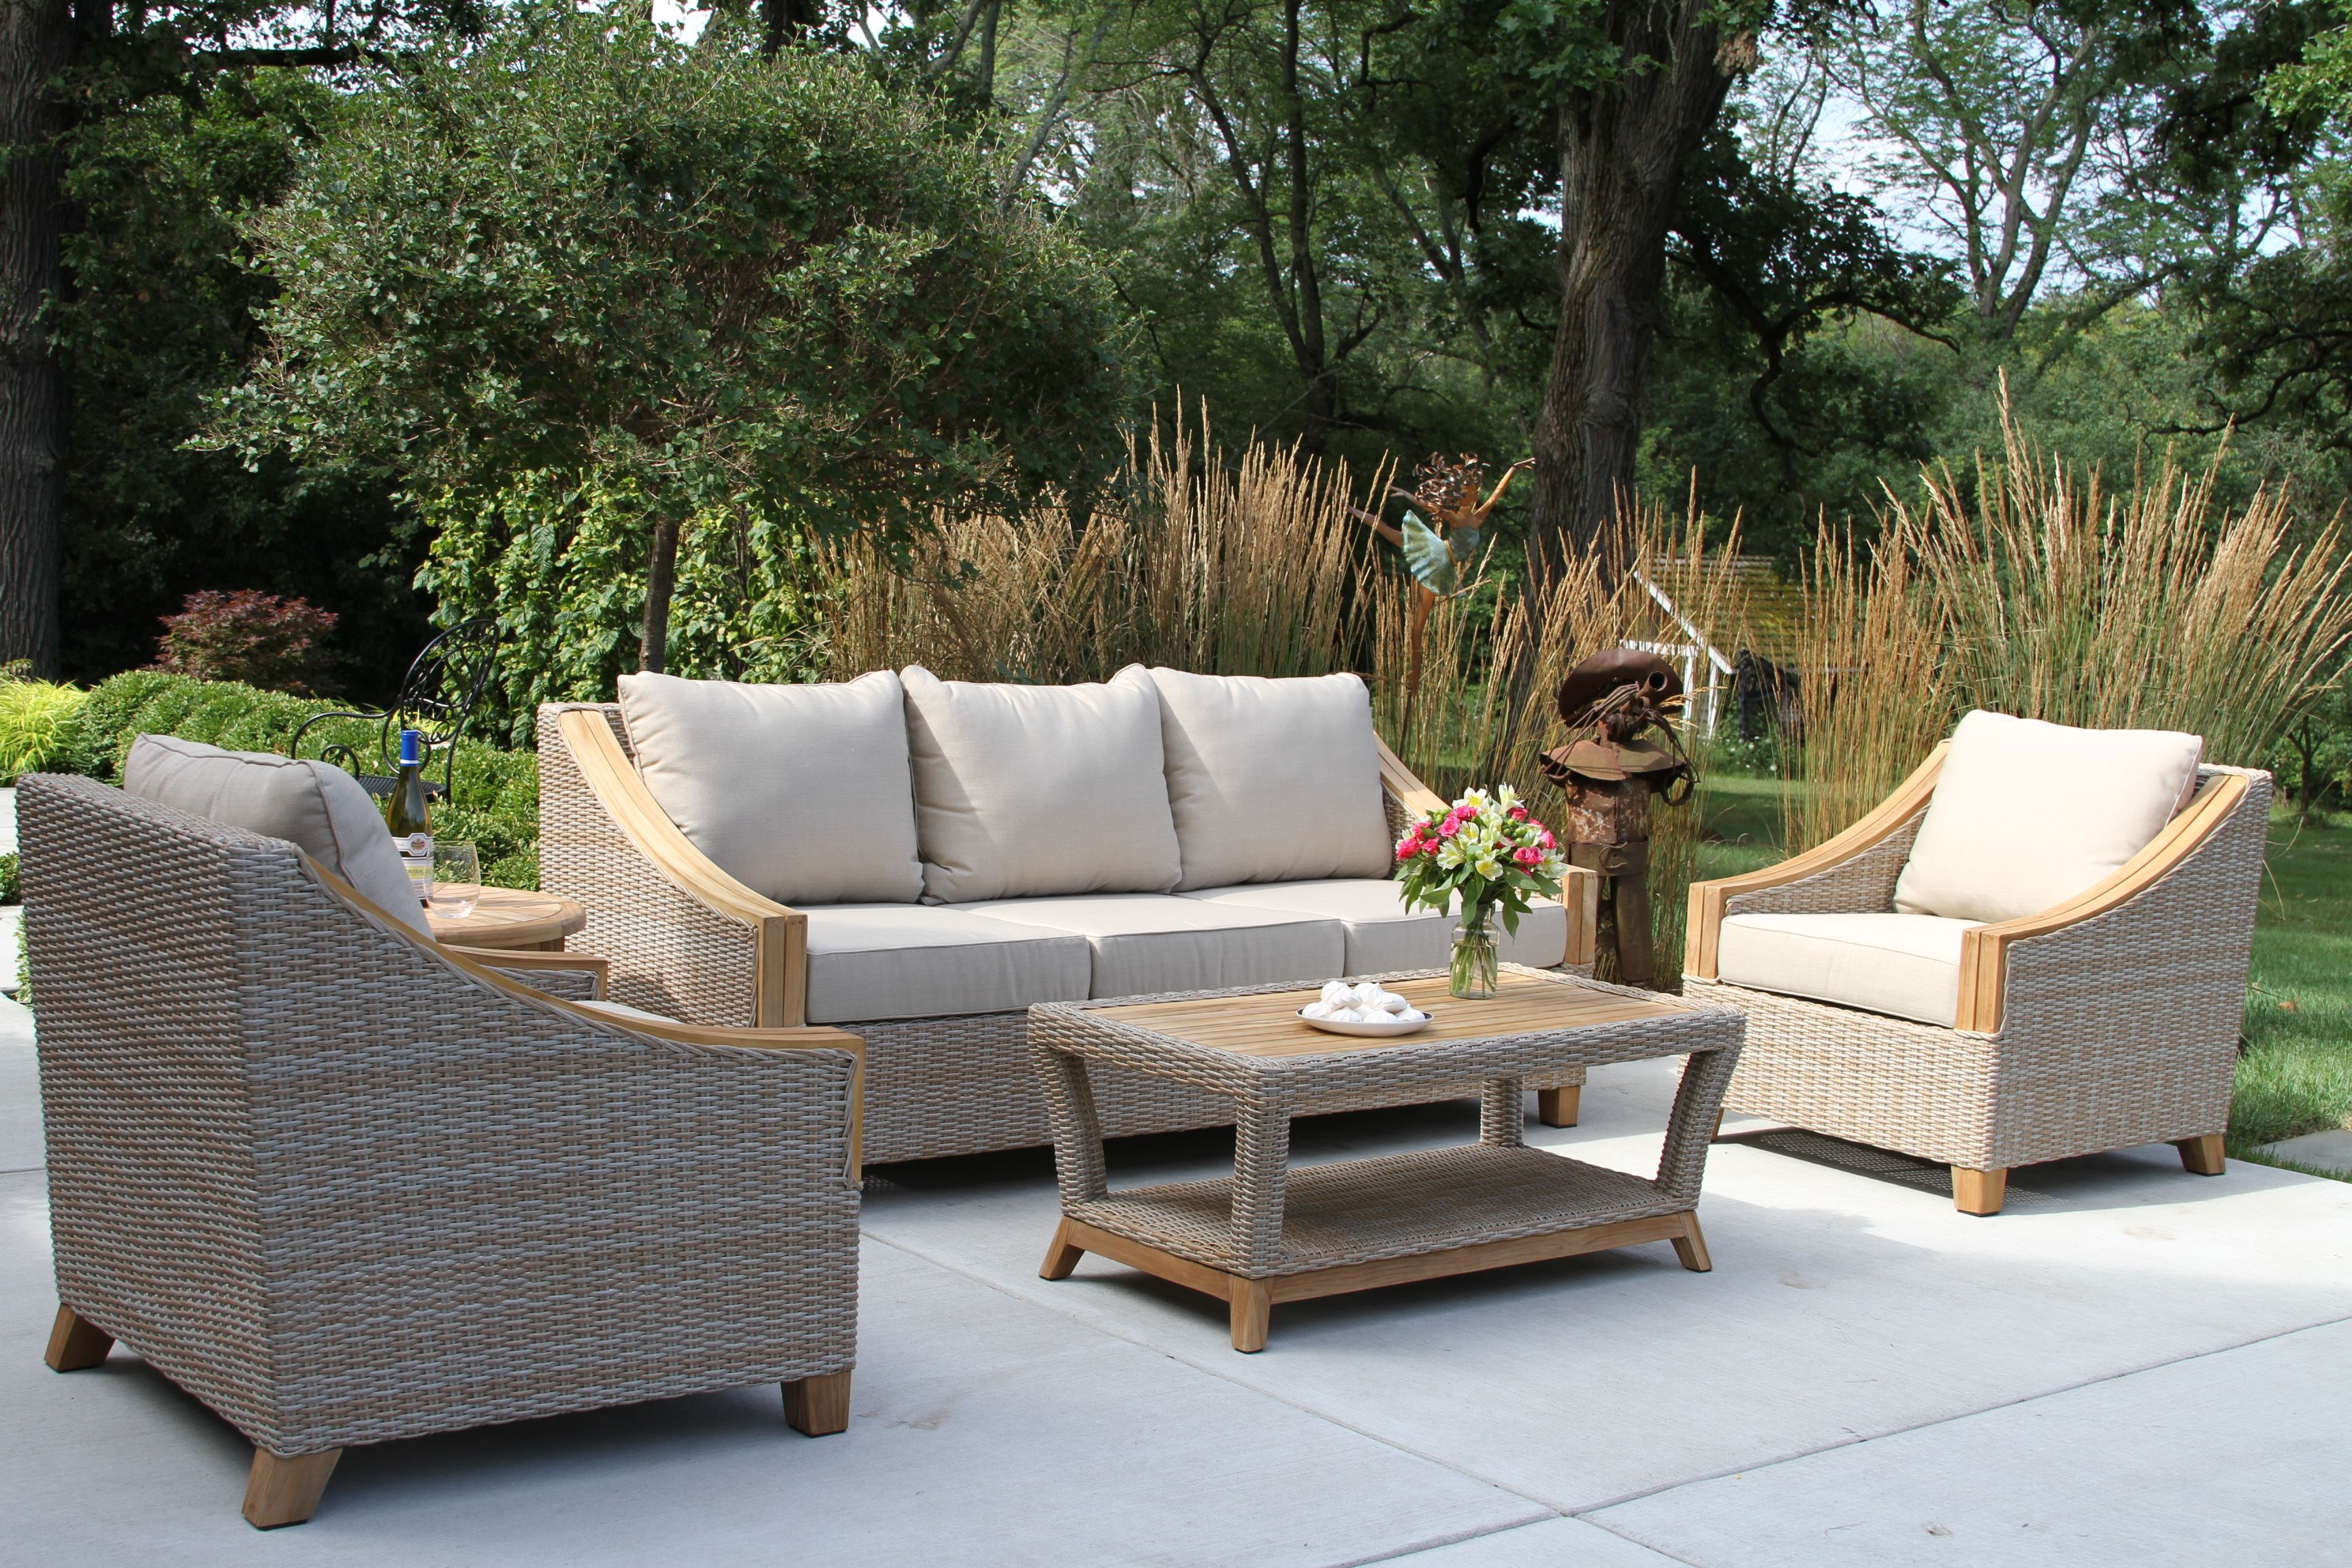 Teak Wicker Coffee Table With Sofa Arm Chairs With Sunbrella Cushions Teak Patio Furniture Lounge Chair Outdoor Patio Furniture [ 2304 x 3456 Pixel ]